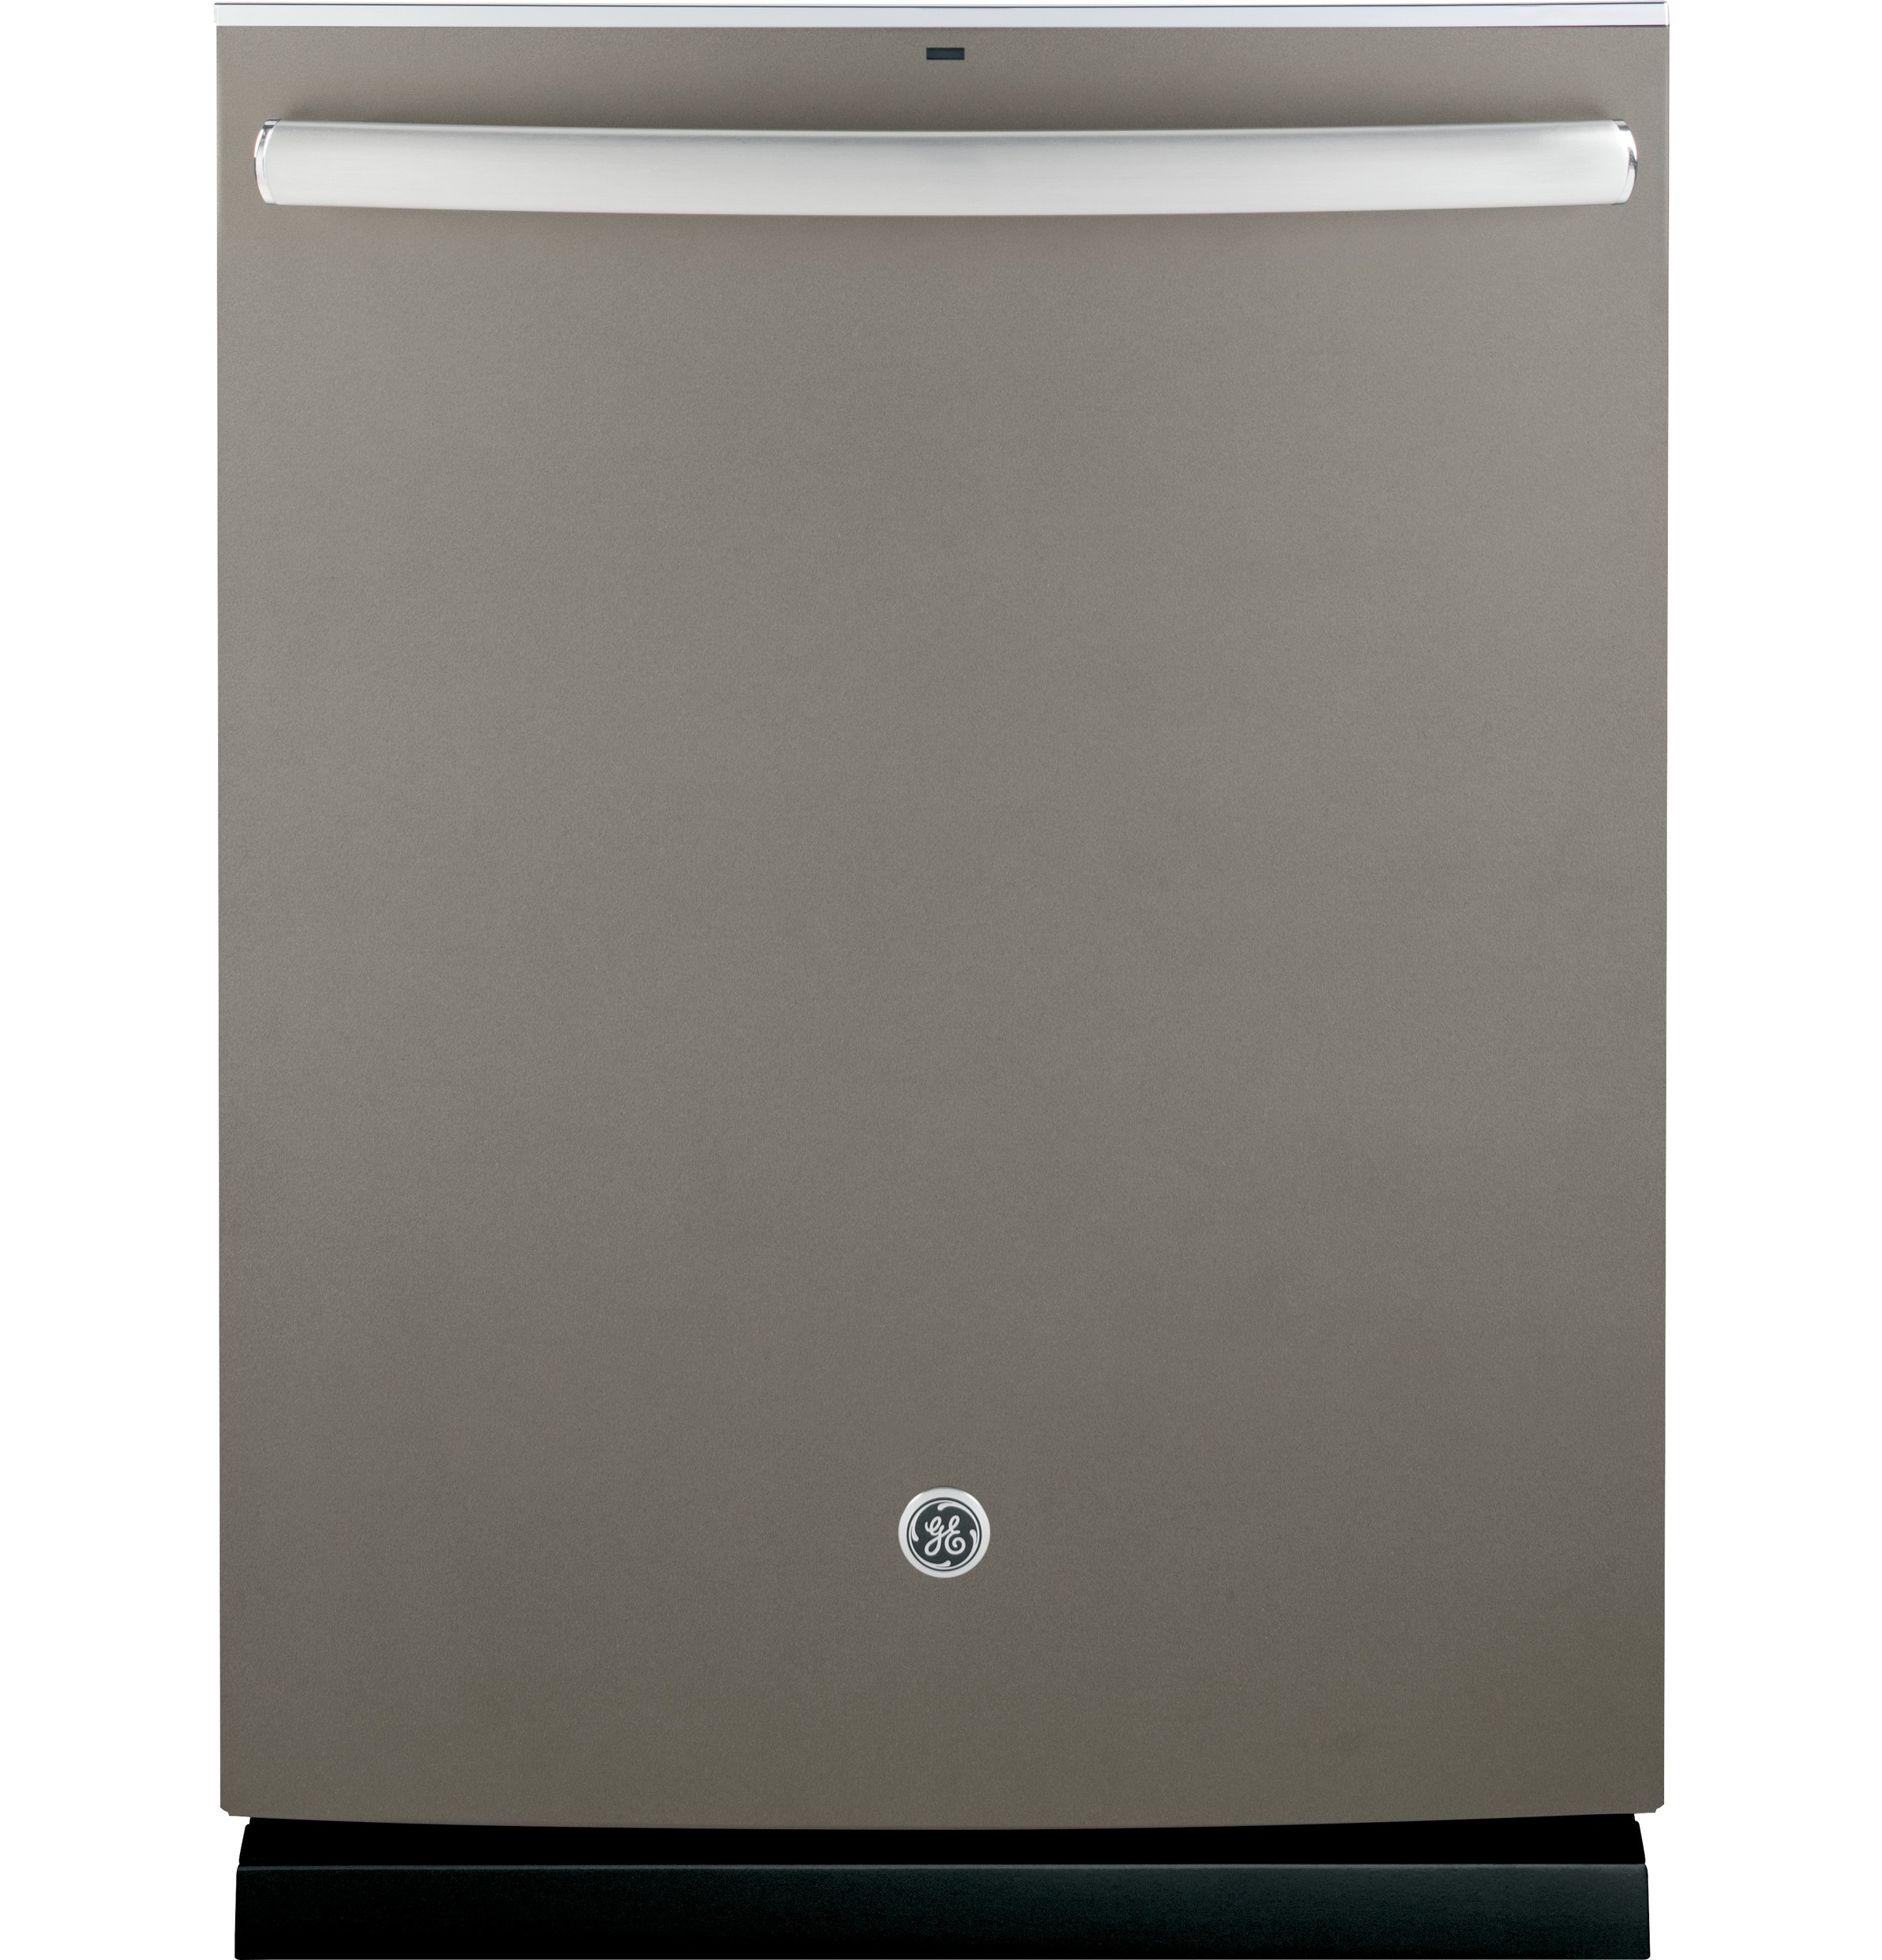 Ge Stainless Steel Interior Dishwasher With Hidden Controls Gdt580smfes Ge Appliances